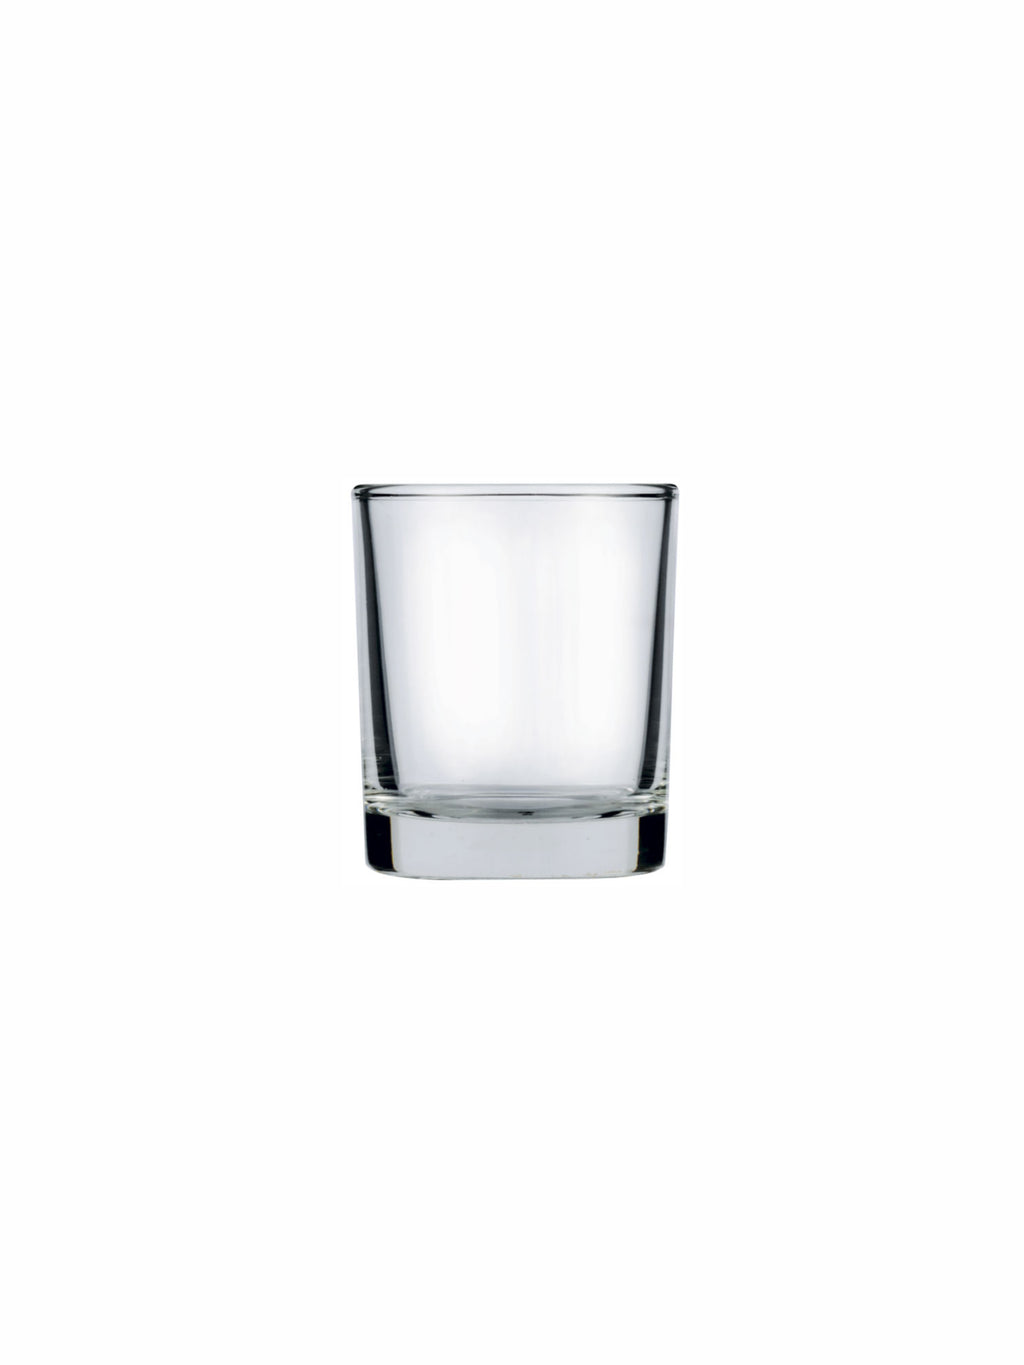 LUCKY Shot Glass (Set of 12pcs)-LG-404202